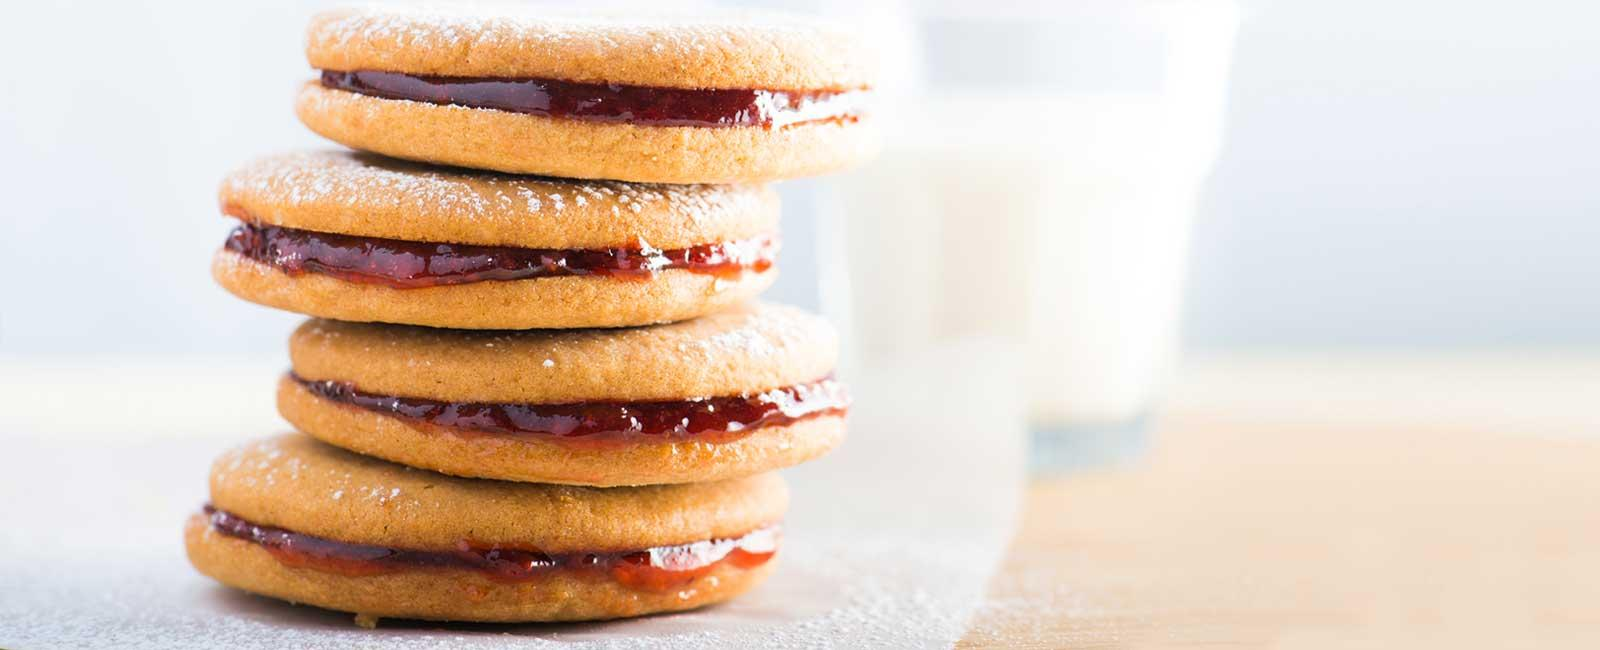 Easy Peanut Butter and Jelly Sandwich Cookies